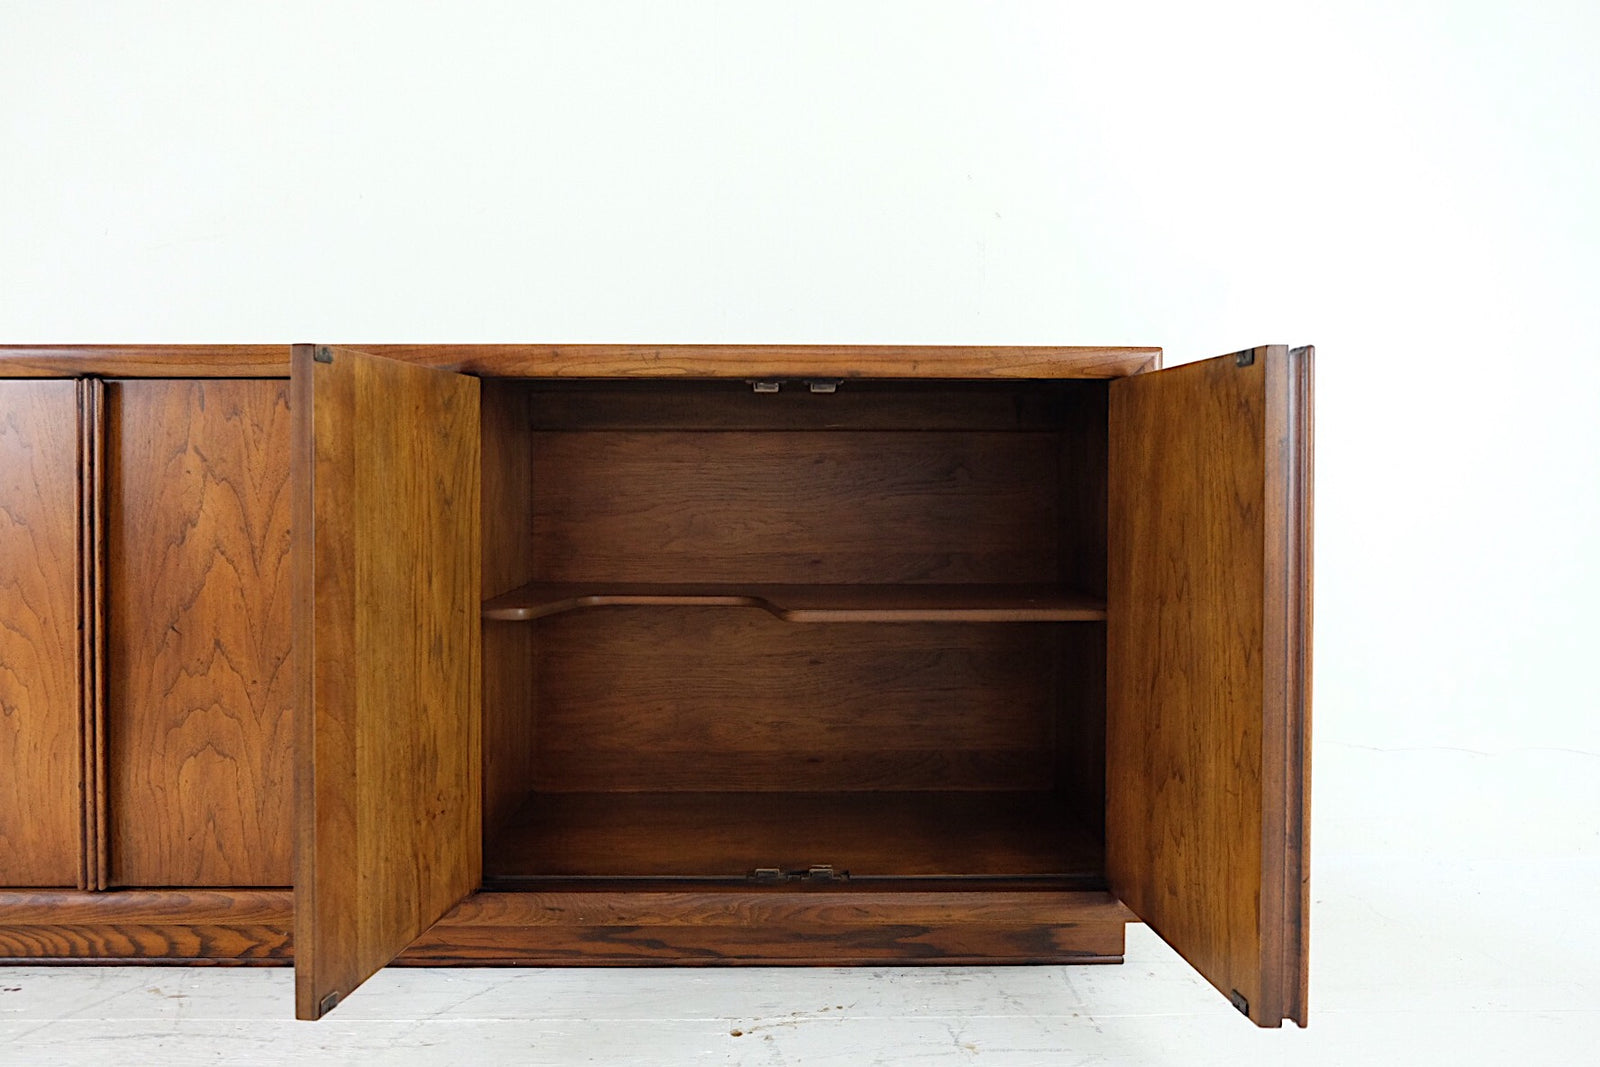 Henrendon Mid Century Credenza Sideboard Buffet Server Four Doors Vertical Triple Carved Registers